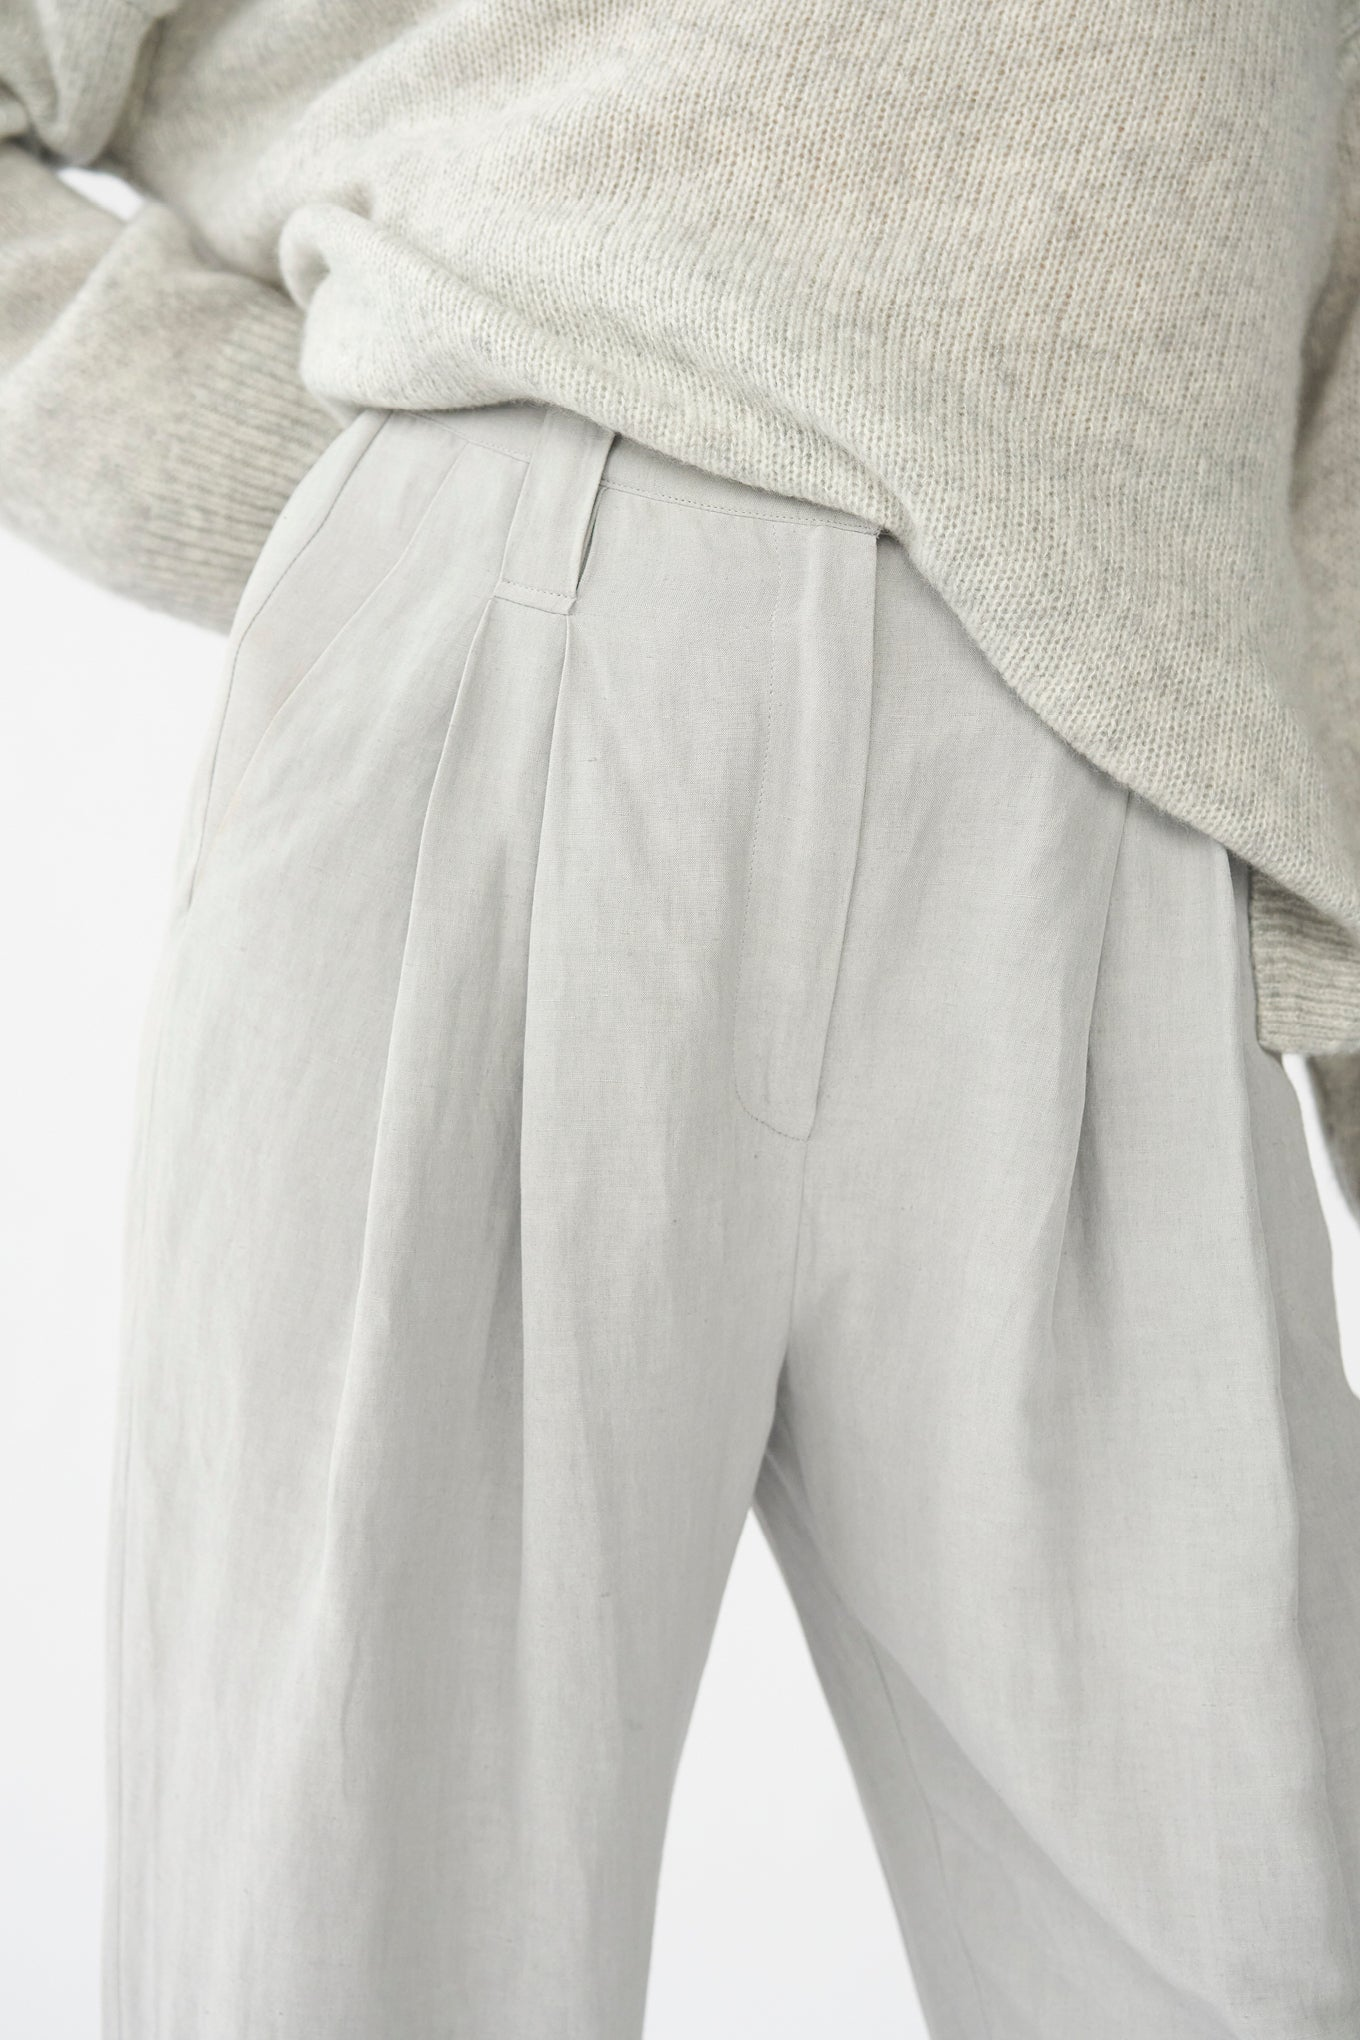 HARRY PANTS - GREY - SILK/LINEN